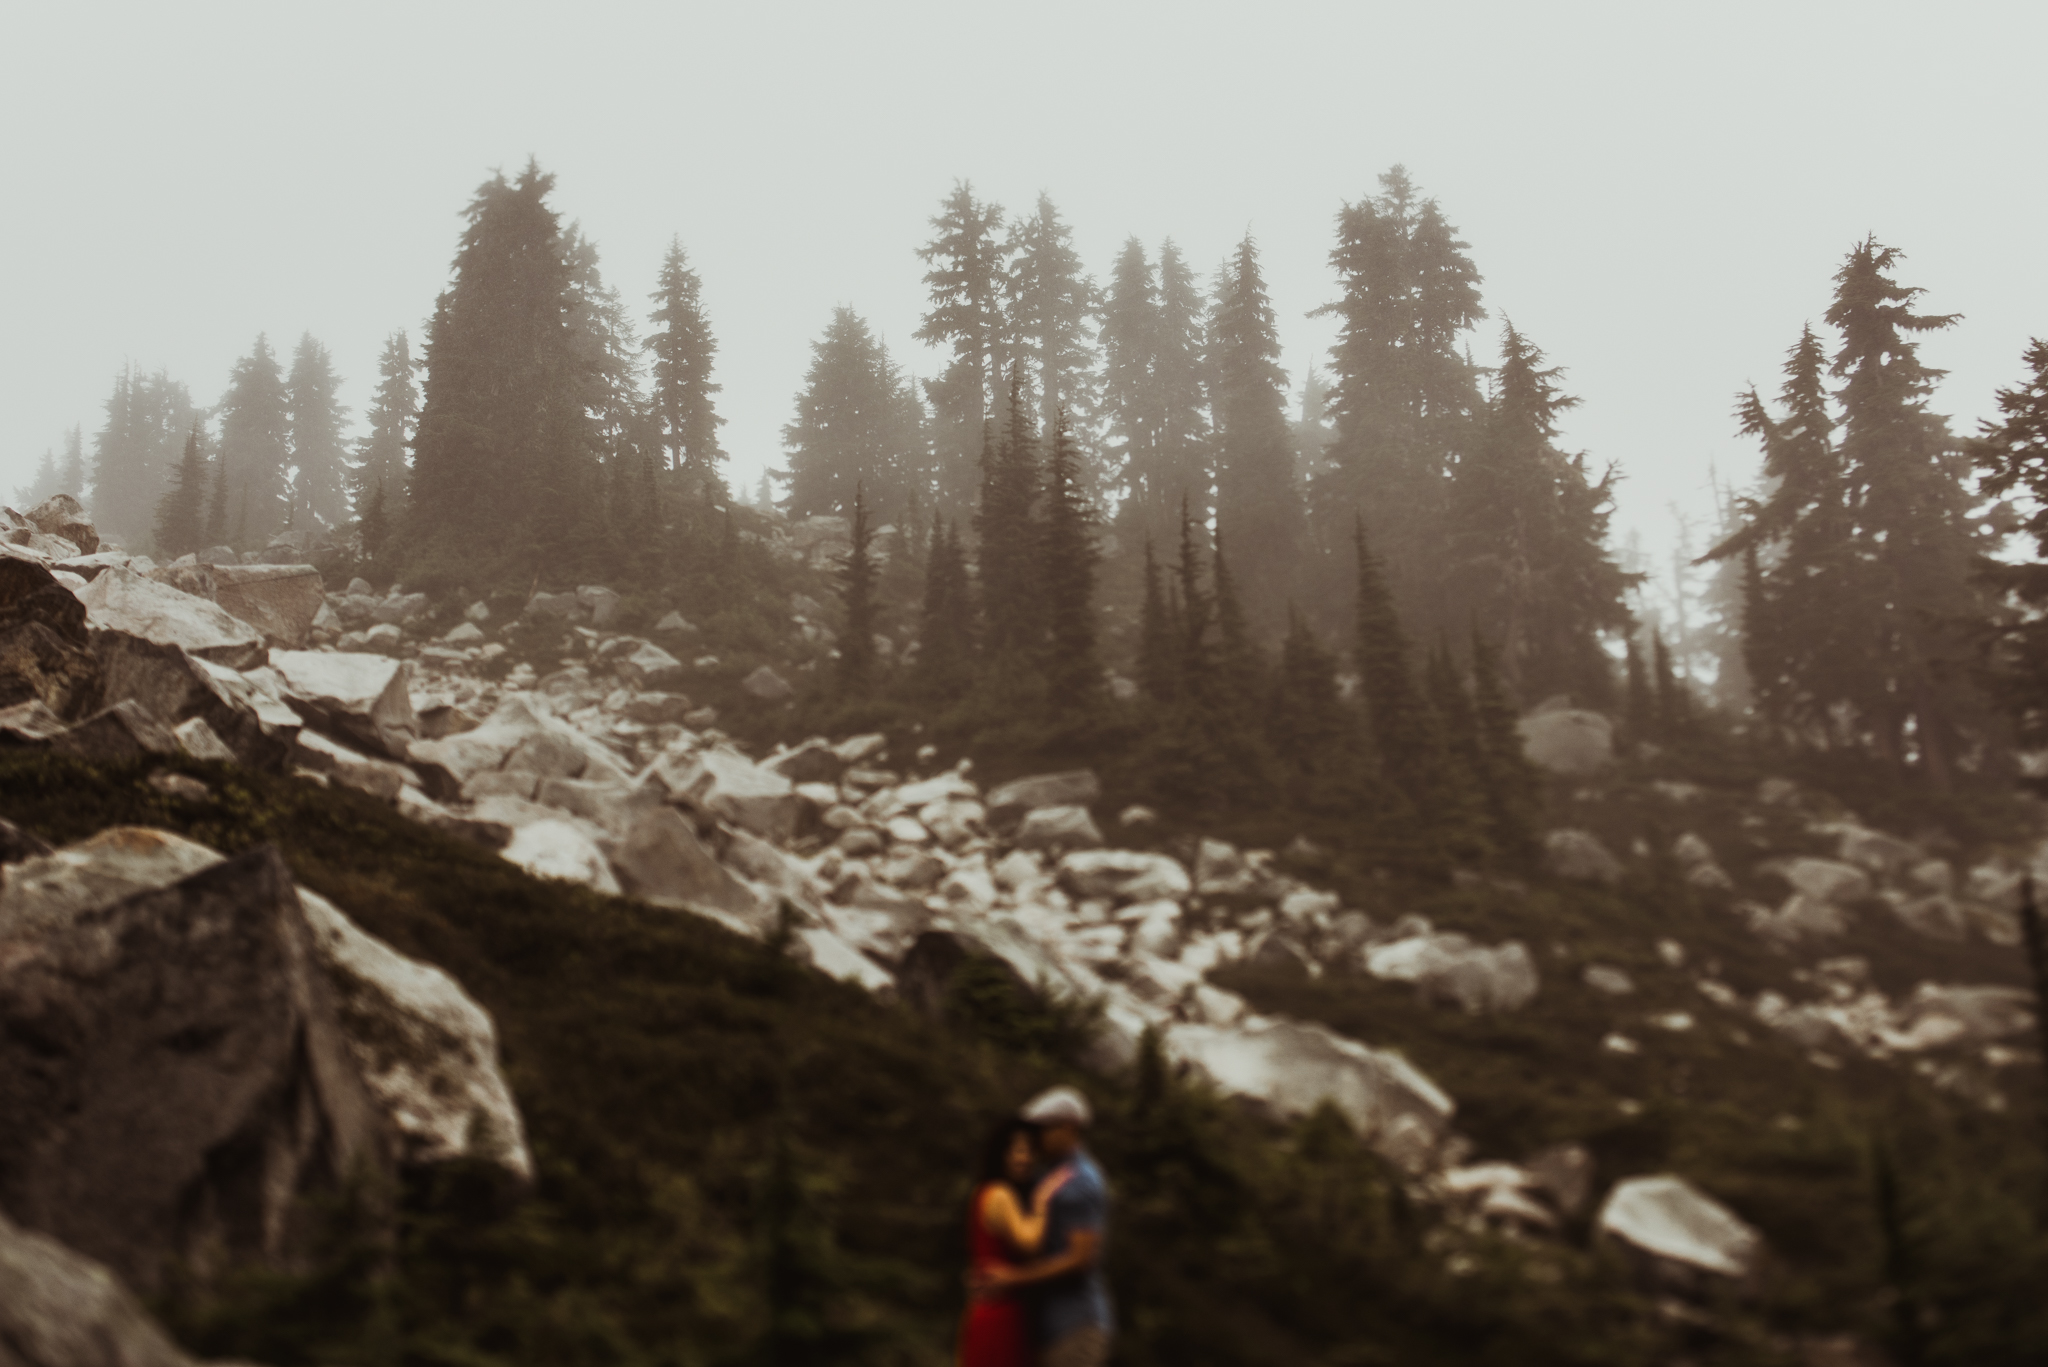 ©Isaiah-&-Taylor-Photography---Hidden-Lake-Cascade-Mountains-Engagement,-Washington-090.jpg